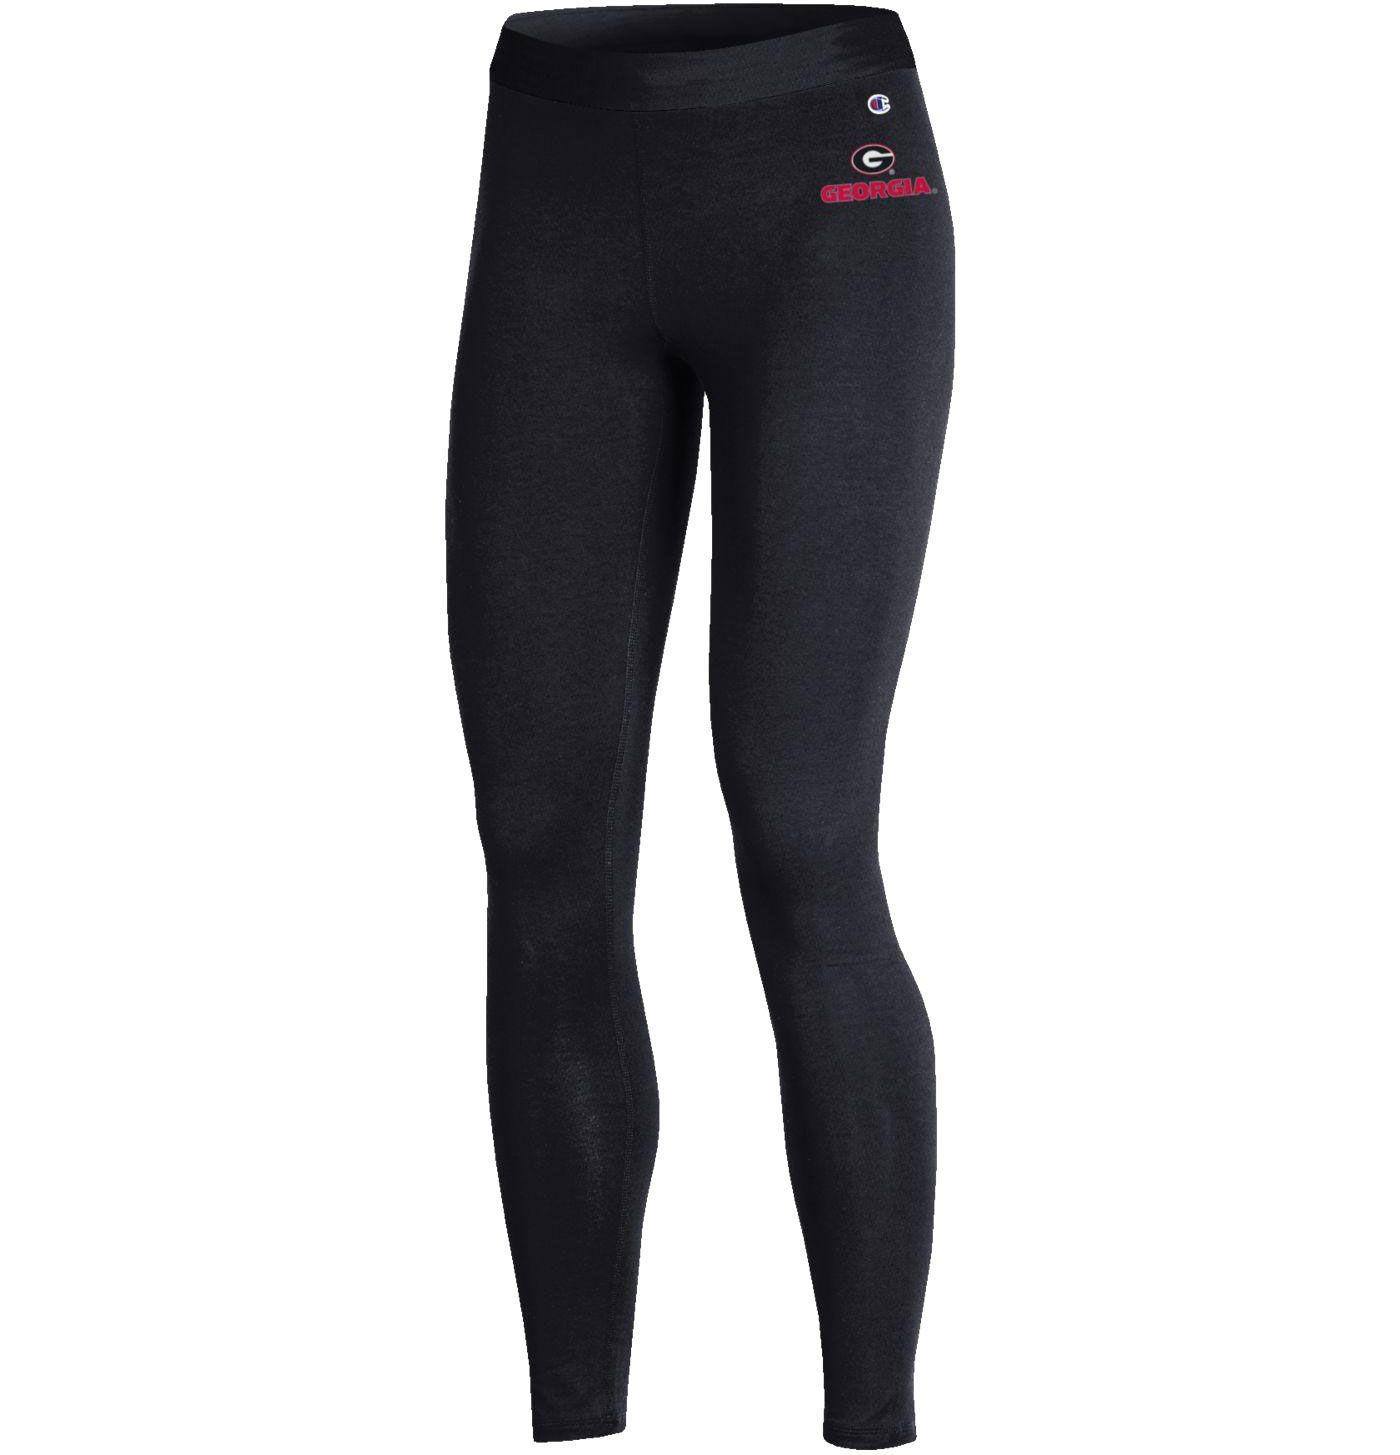 Champion Women's Georgia Bulldogs Performance Black Leggings